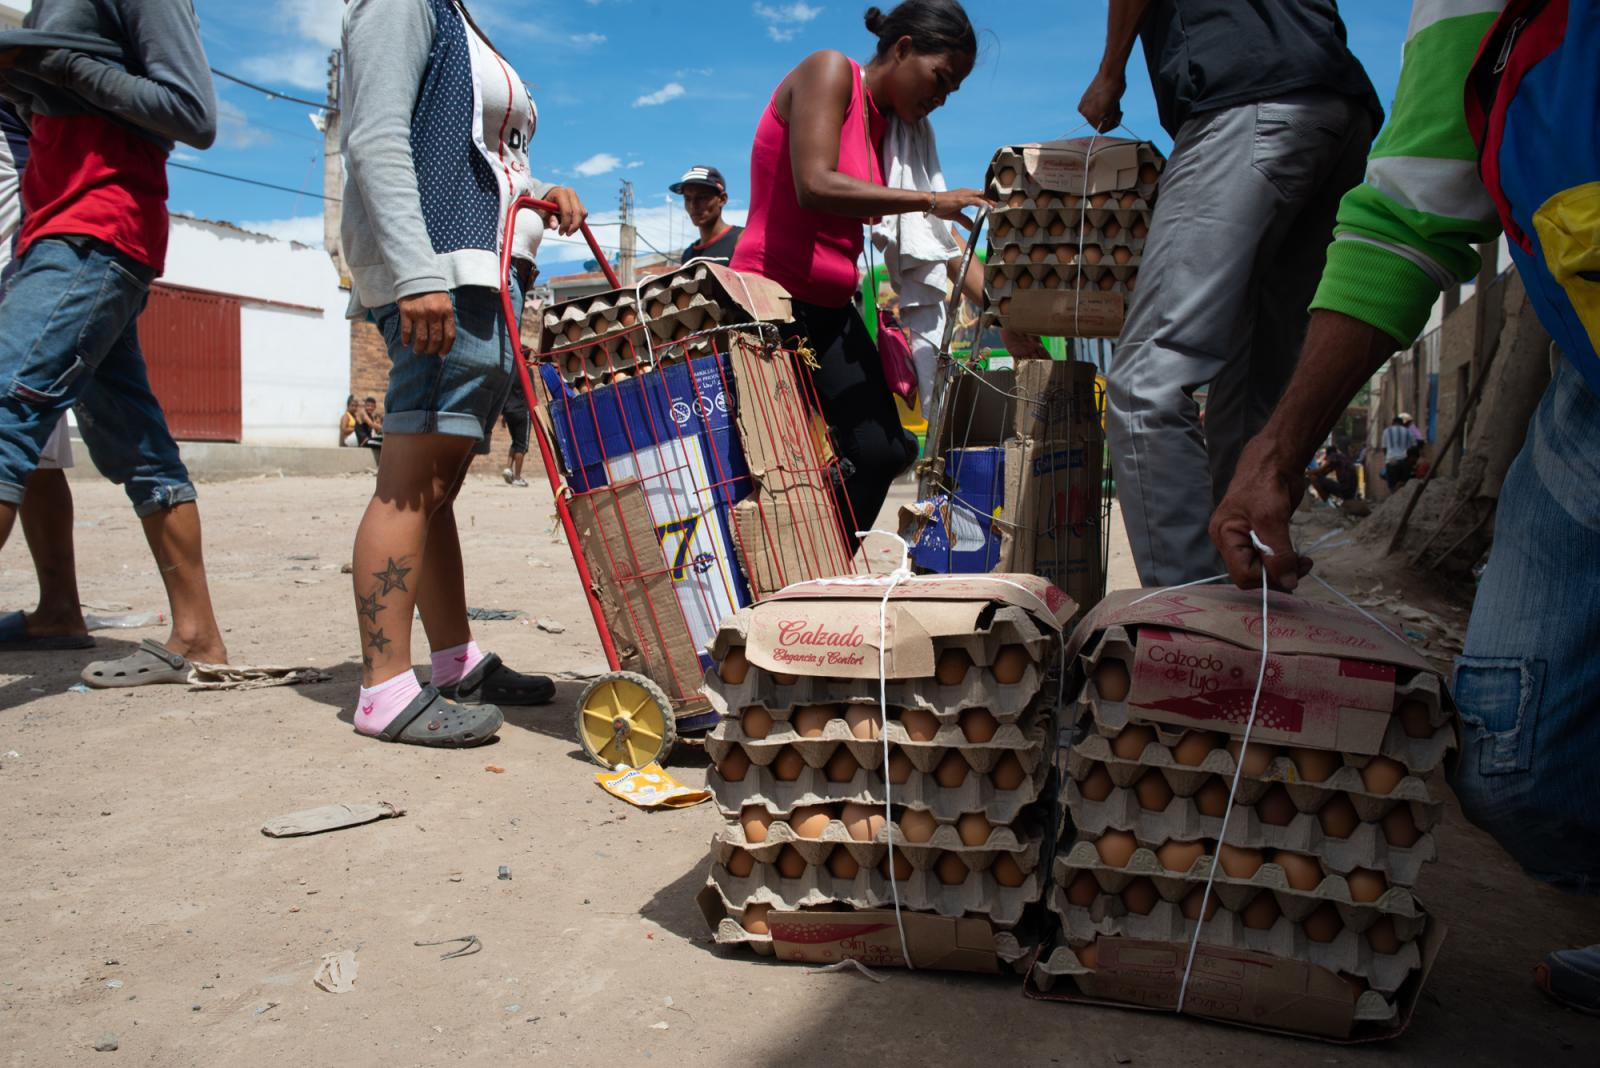 Zully and Nelly are charging their carts with eggs and other goods to carry over to Venezuela. The carriers, or Garrucheras, are paid an average of 5,000 - 10,000 COP (2-3 USD) per trip, depending on the weight. Nelly once earned 50,000 COP ($13 USD) for a heavy load. La Parada, Colombia - October 9, 2019.